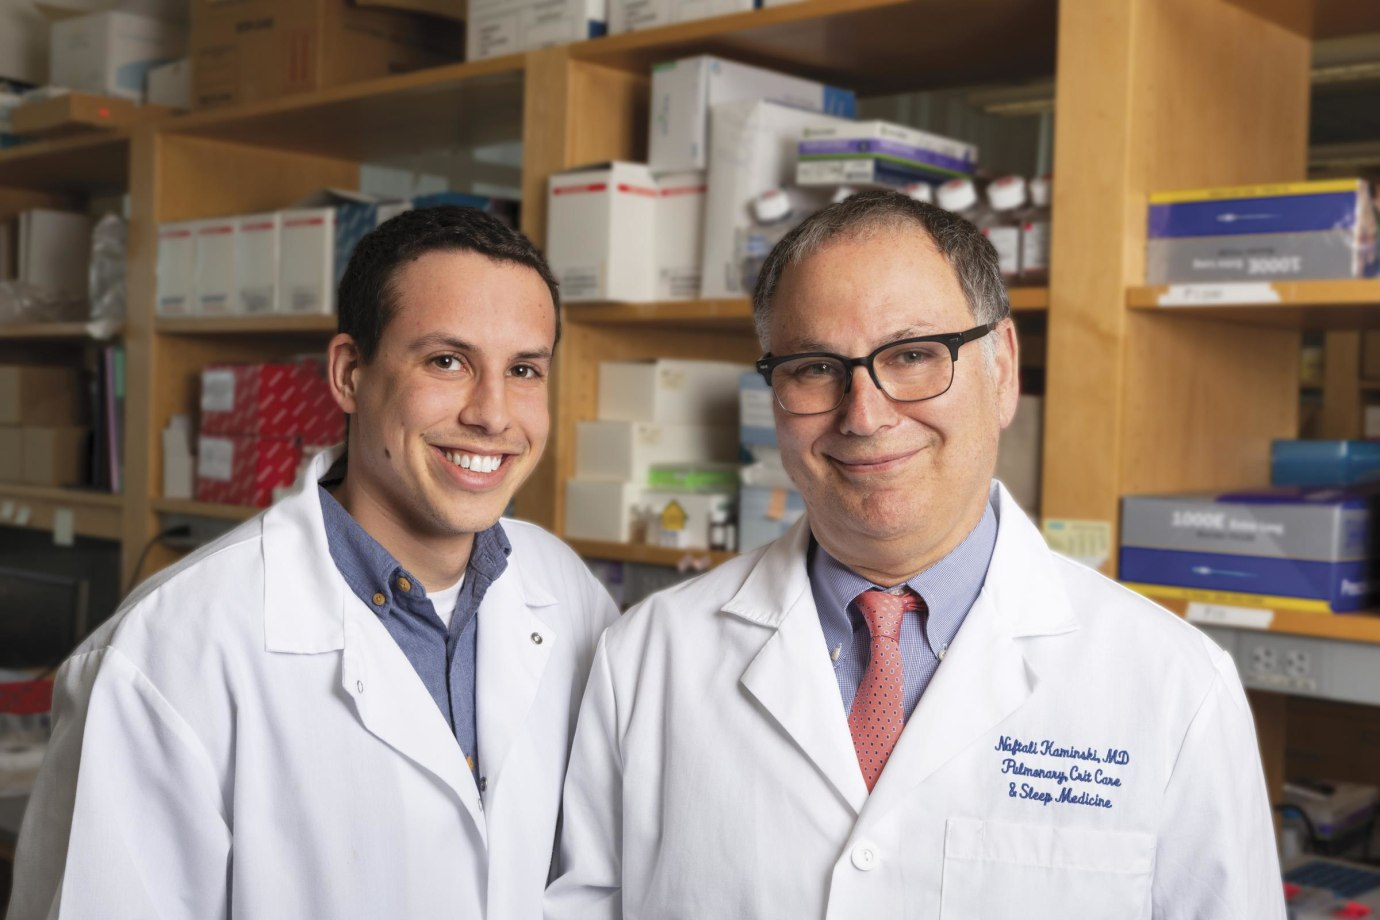 Naftali Kaminski (right) is accelerating his lab's research into idiopathic pulmonary fibrosis (IPF), a disease that devastates the lungs, thanks to a gift from Three Lakes Partners, a venture philanthropy group whose mission is to conquer IPF. In 2017, lab member Taylor Adams (left) presented encouraging data that focused attention on the progress Kaminski and his team are making.